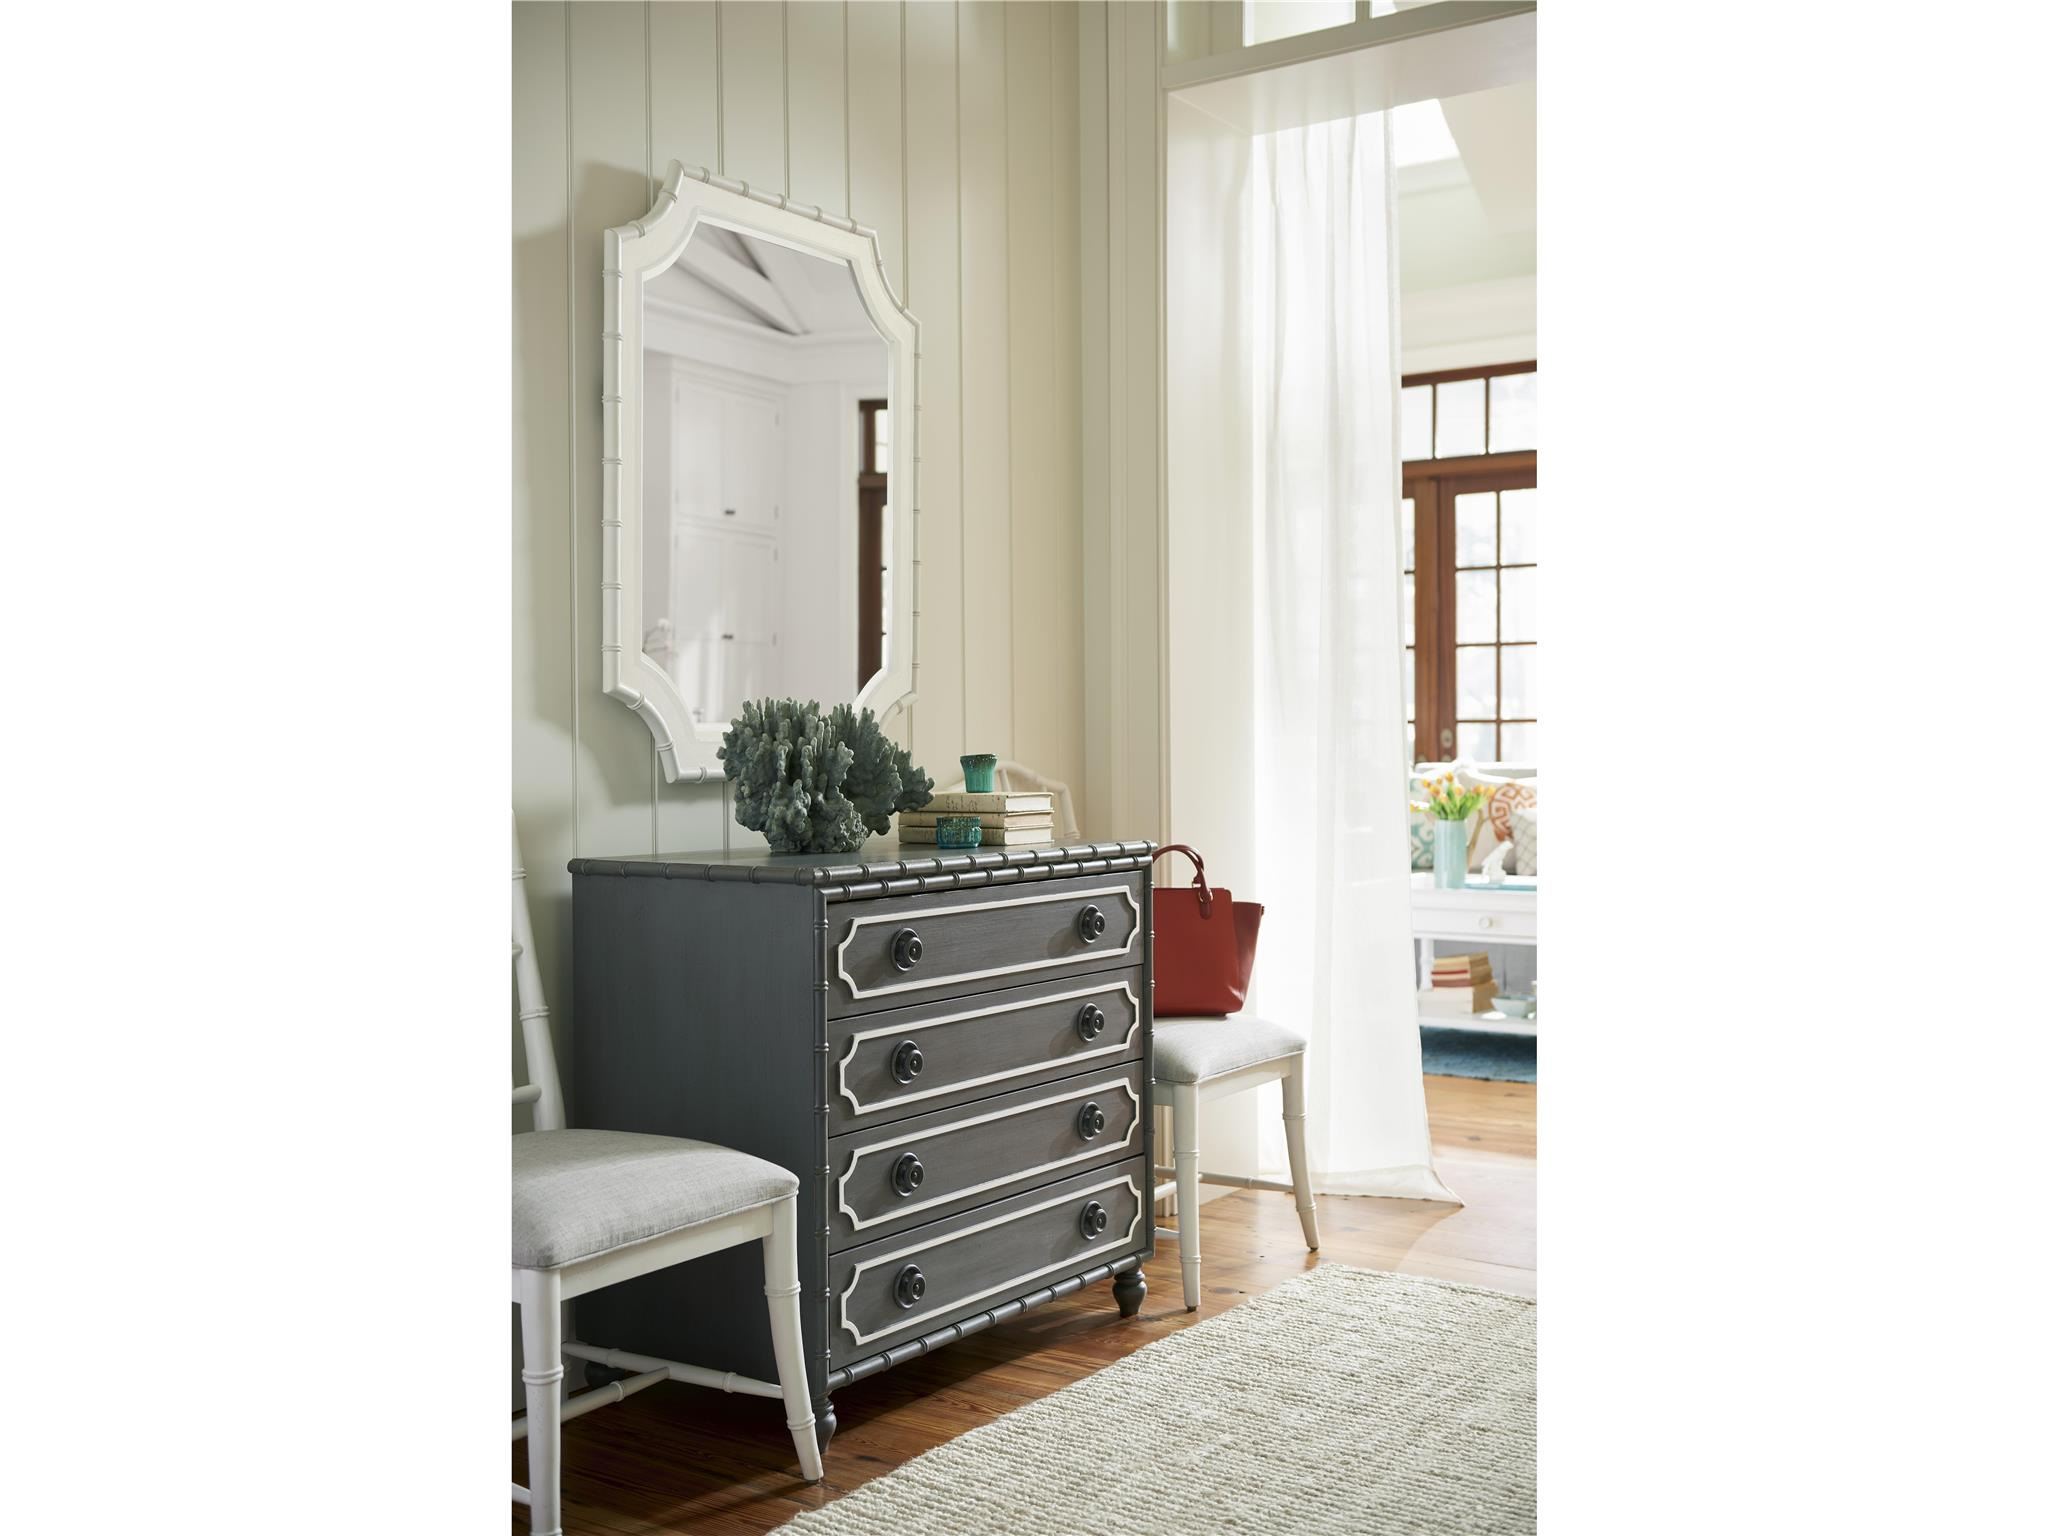 Universal Furniture Cottage Paula Deen Home Hall Chest